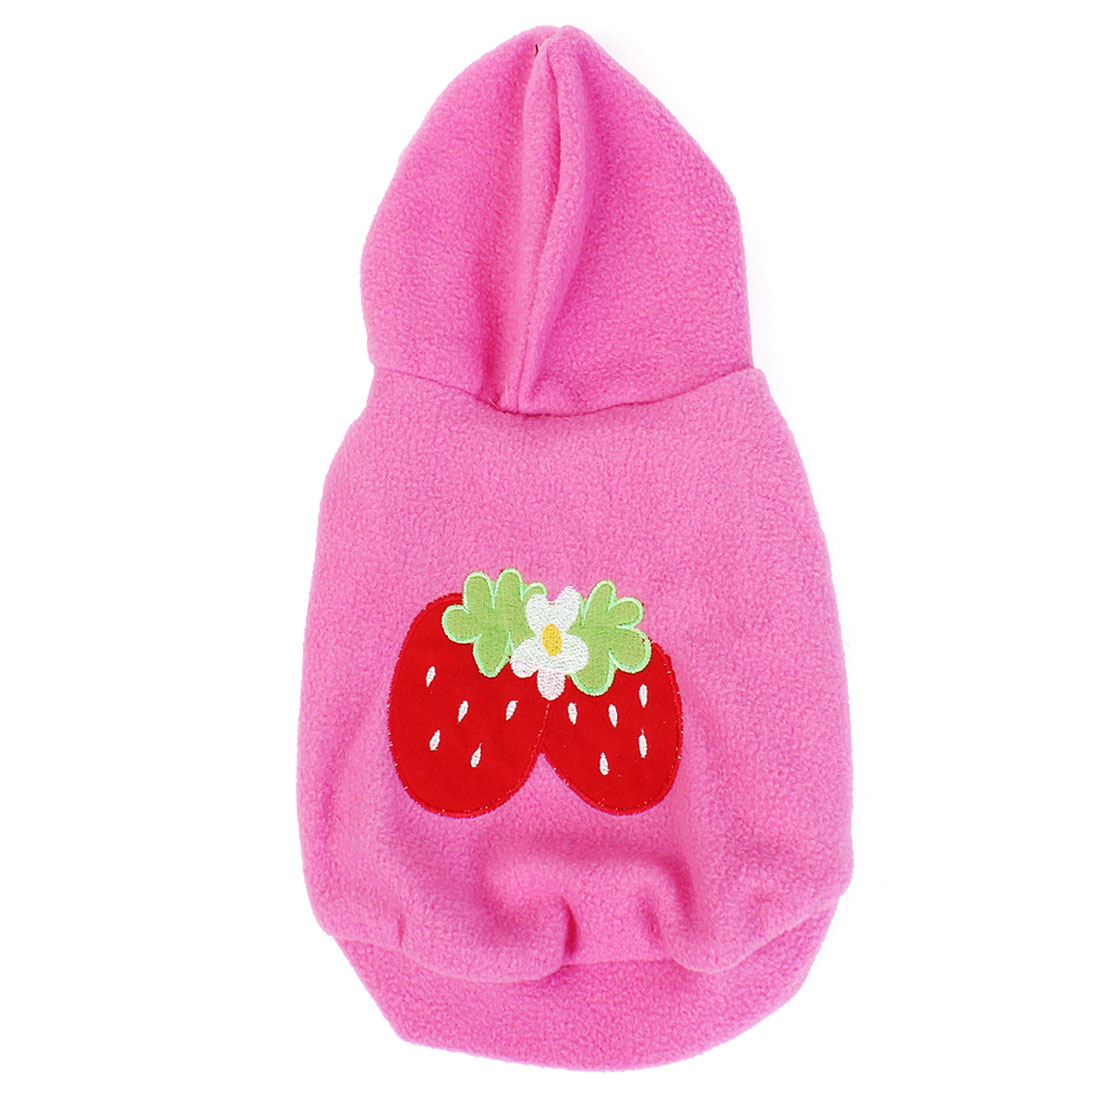 Winter Warm Strawberry Pattern Hoodie Sleeveless Pet Dog Doggy Apparel Coat Clothes Pink Size XL